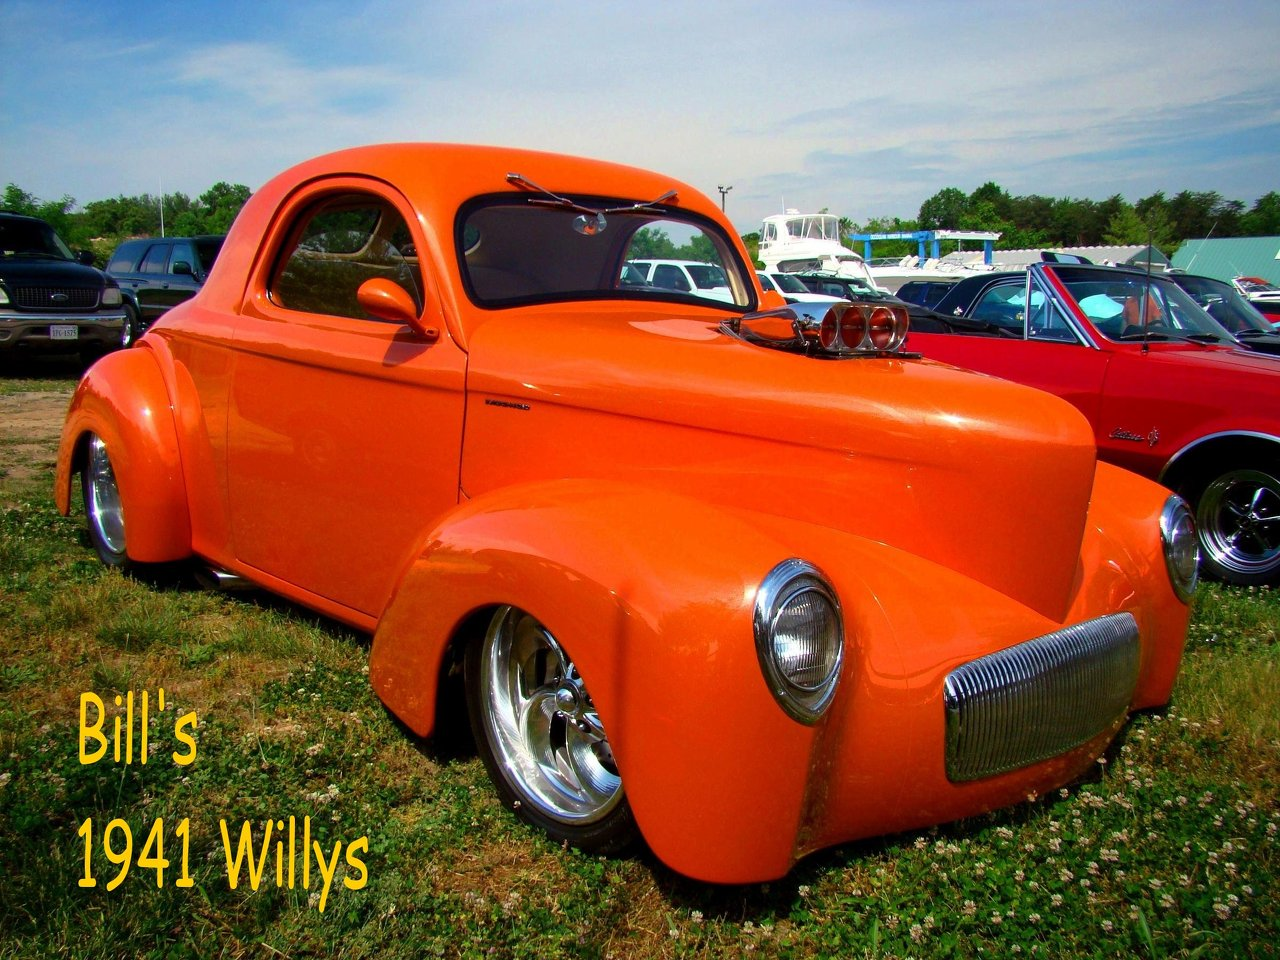 Bills 1941 Willys-2.jpg